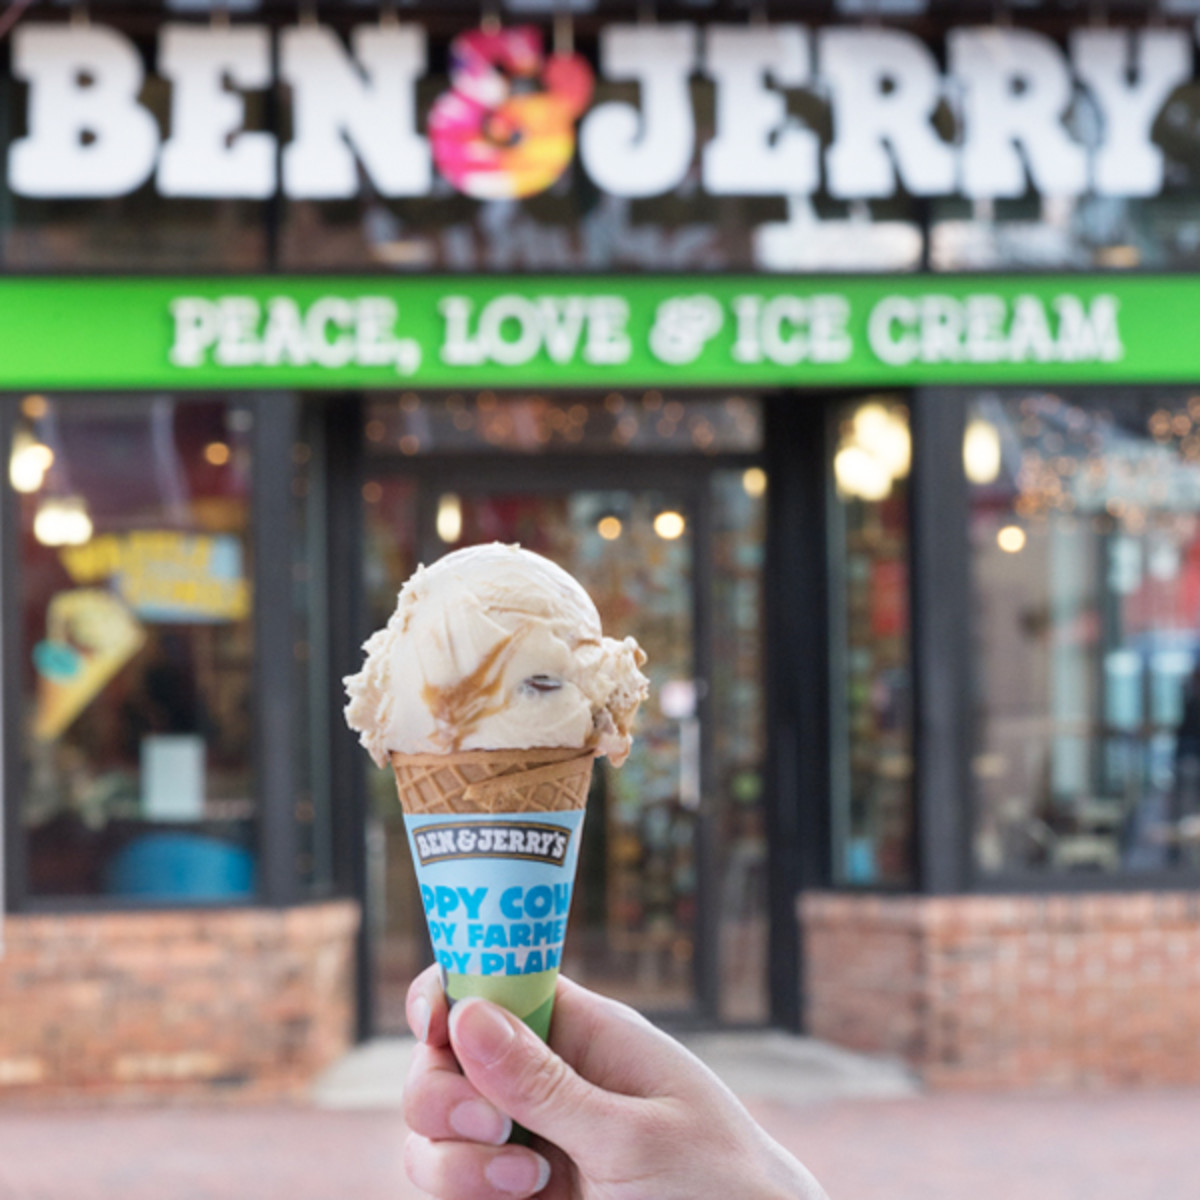 Ben and Jerry's Free Ice Cream Cone Day